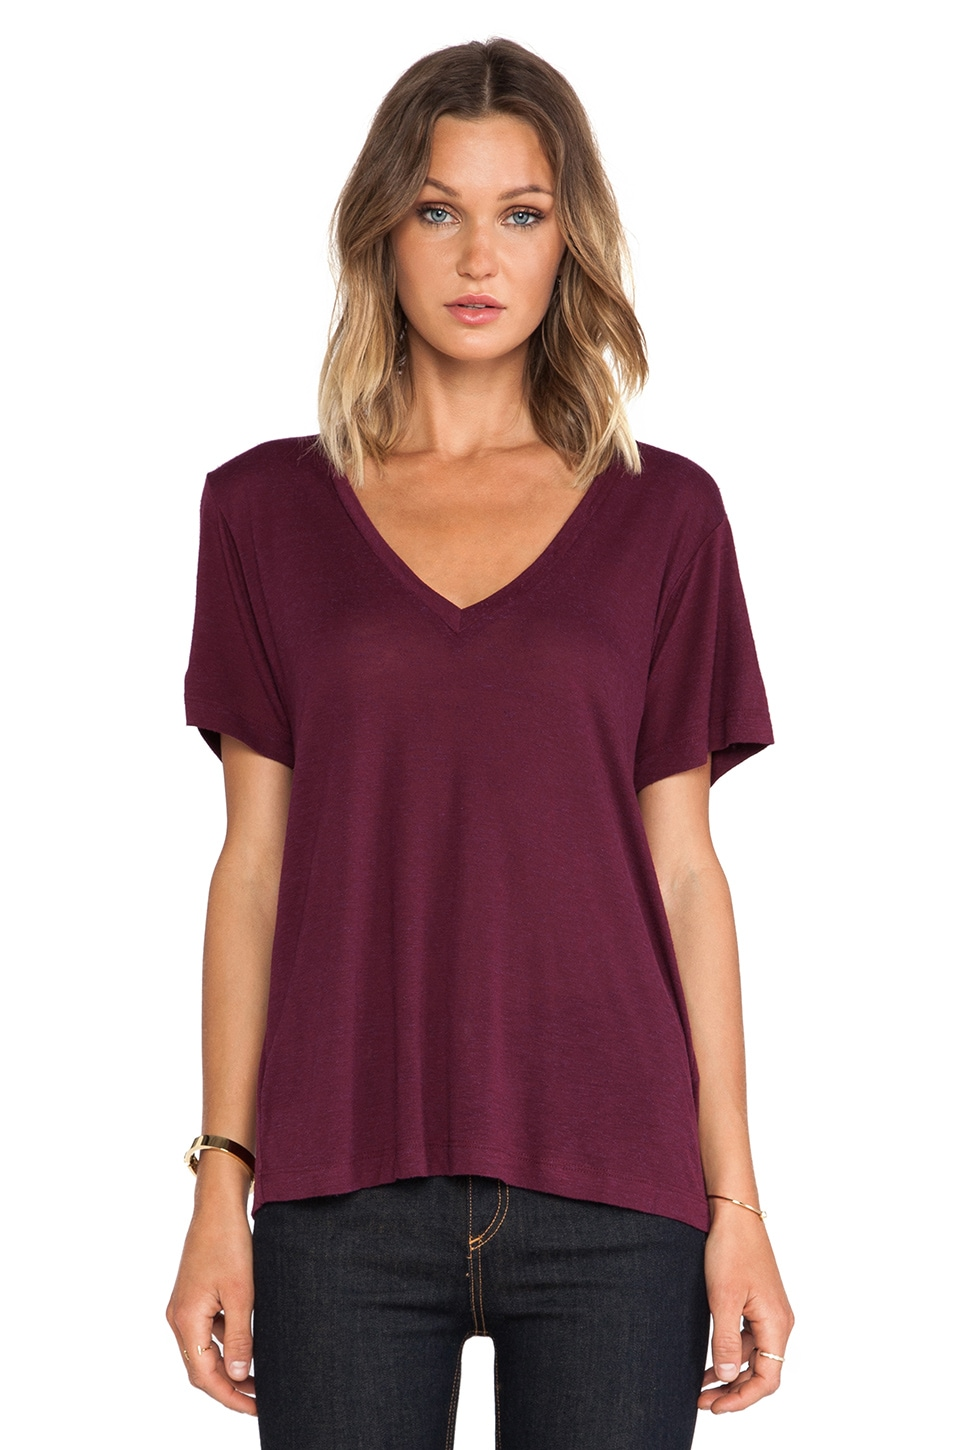 A Fine Line Levi V Neck Tee in Maroon